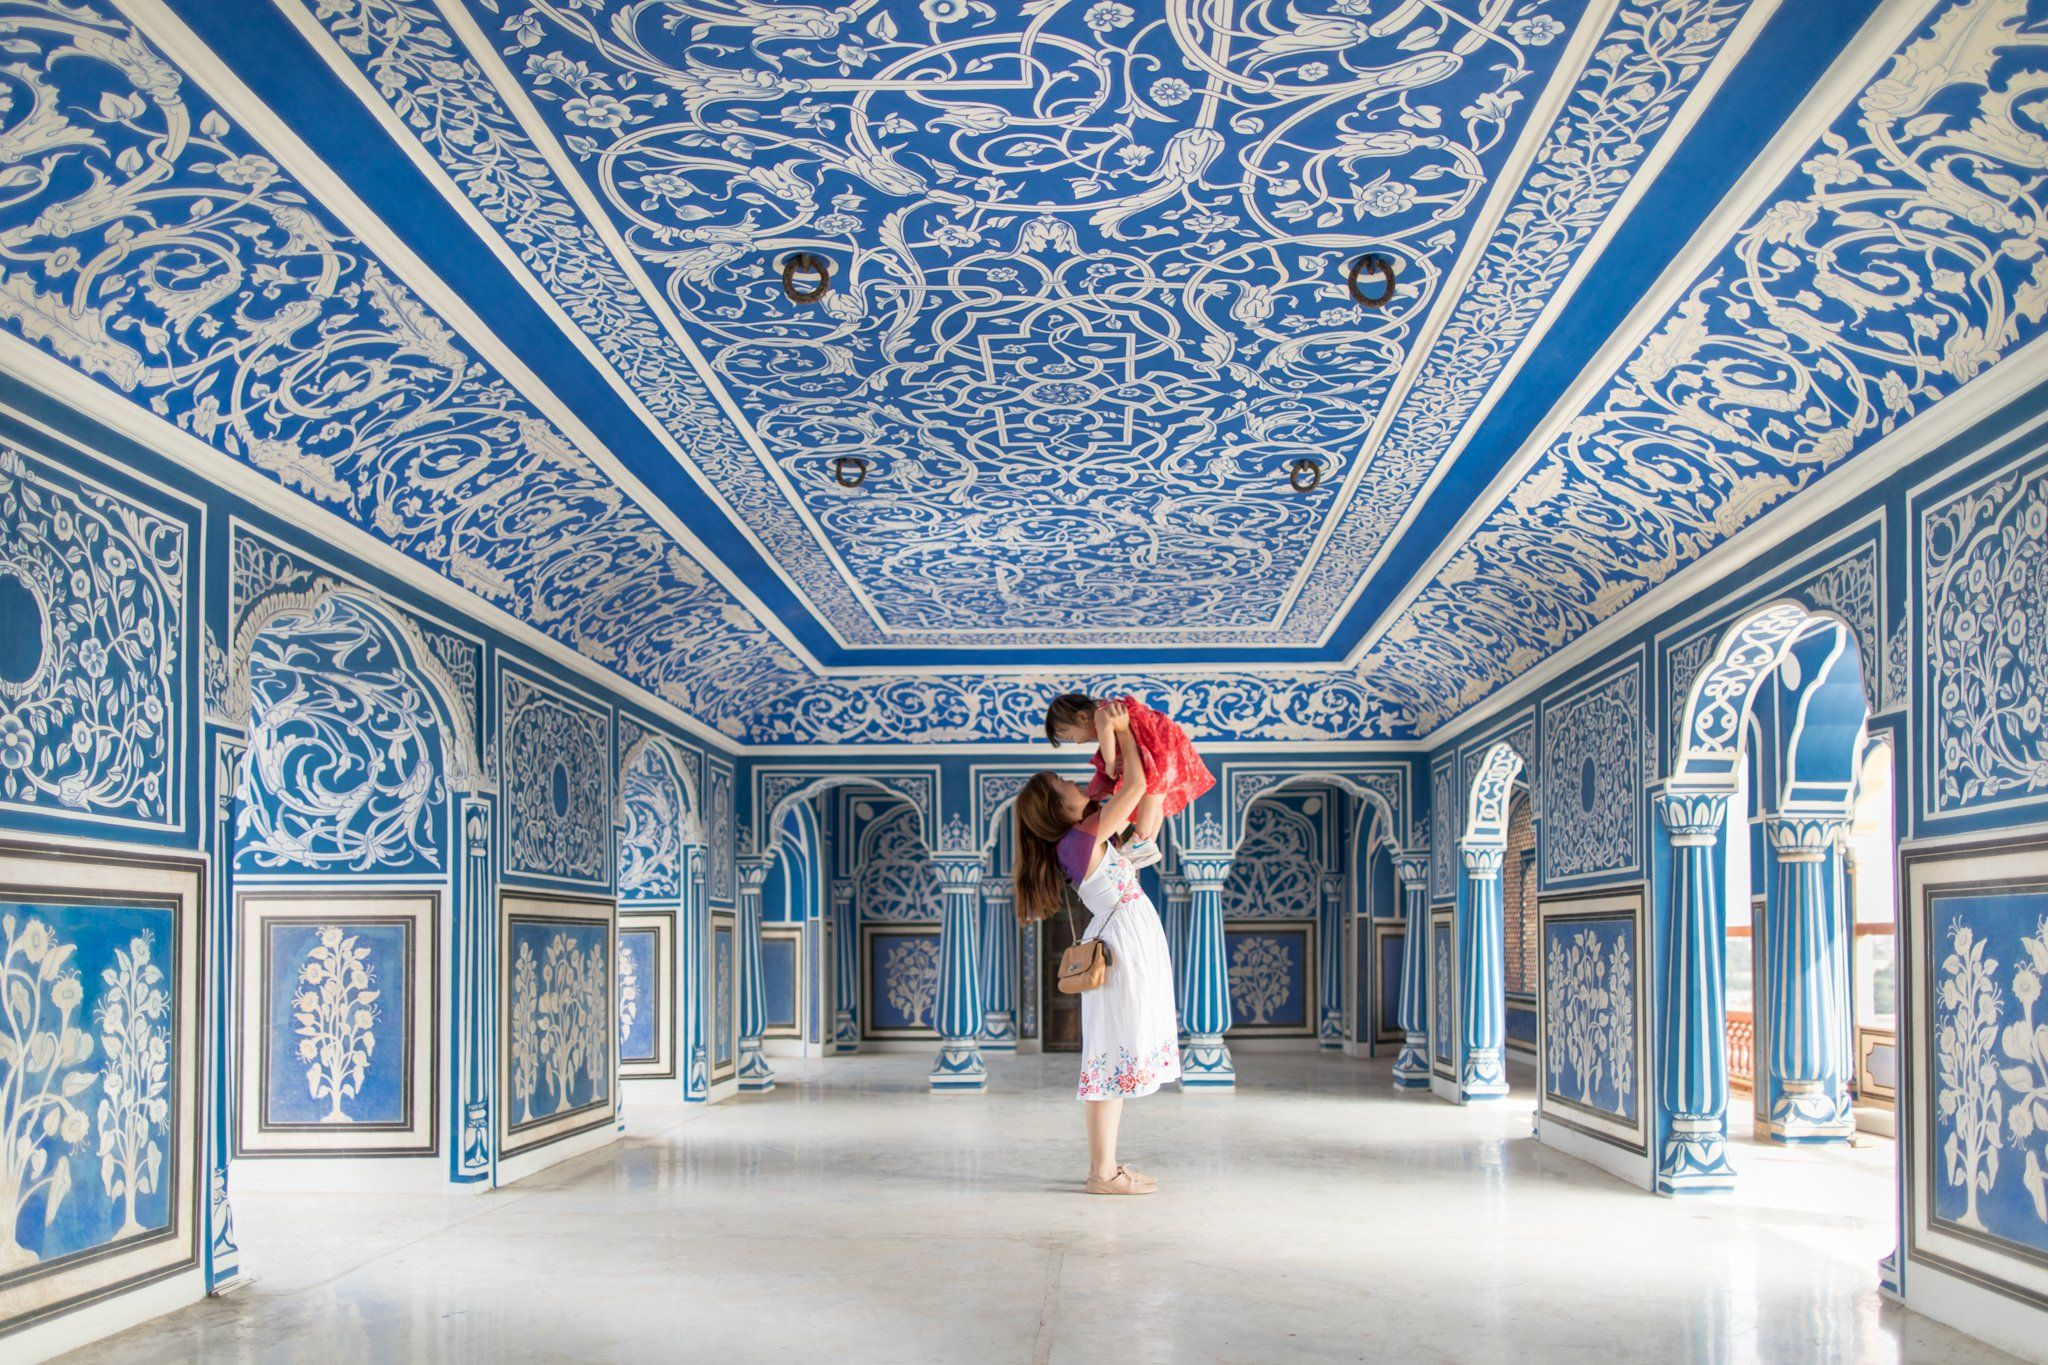 Sukh Niwas Blue Room City Palace Jaipur India 2048 X 1365 City Palace Jaipur Blue Rooms Jaipur